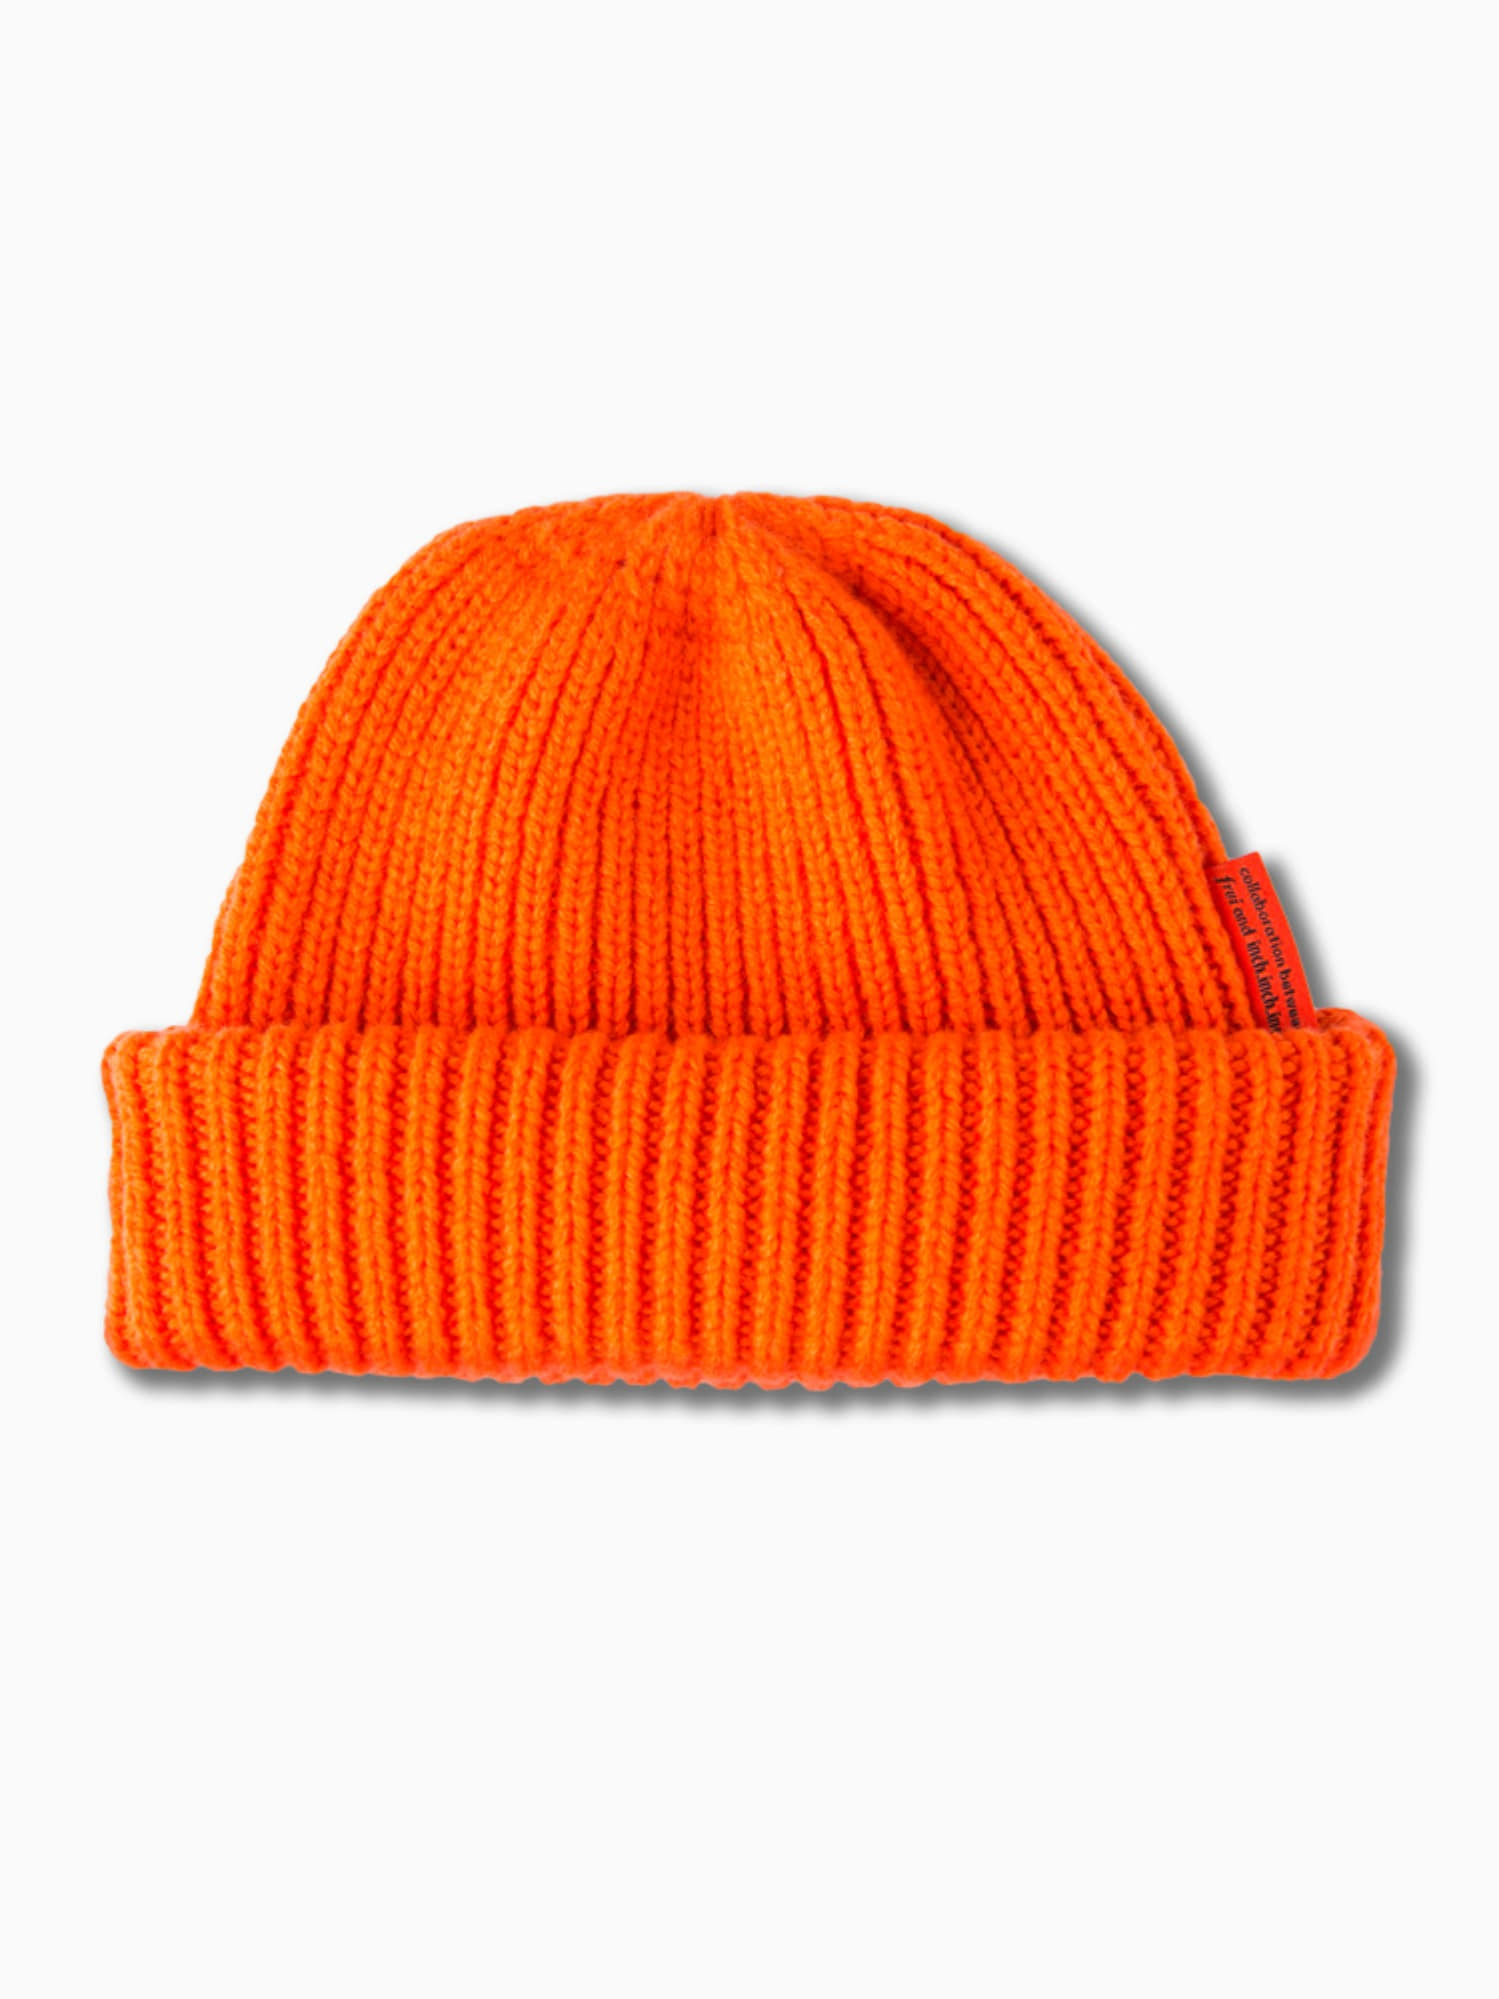 [inch_inch_beanie] Lambs-wool / Orange